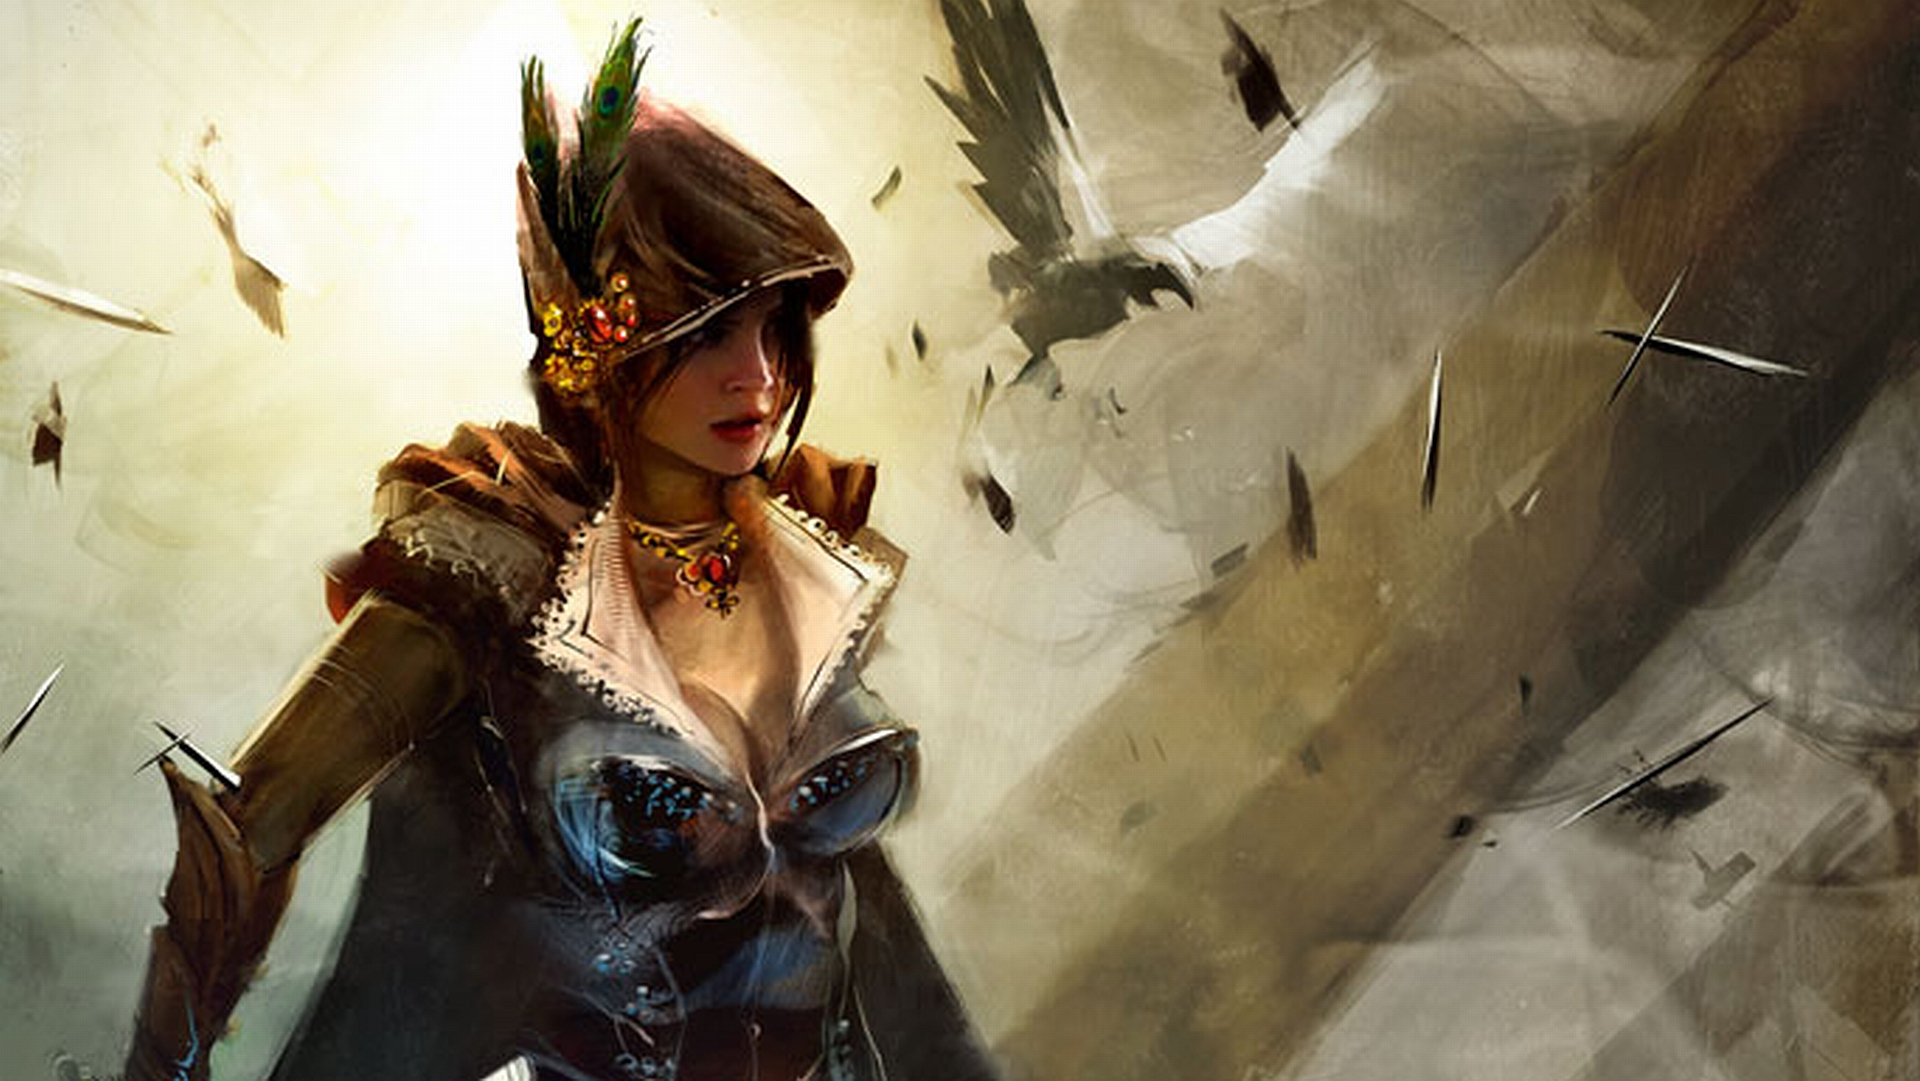 Guild Wars 2 Full Hd Wallpaper And Background Image: Guild Wars 2 Full HD Wallpaper And Background Image